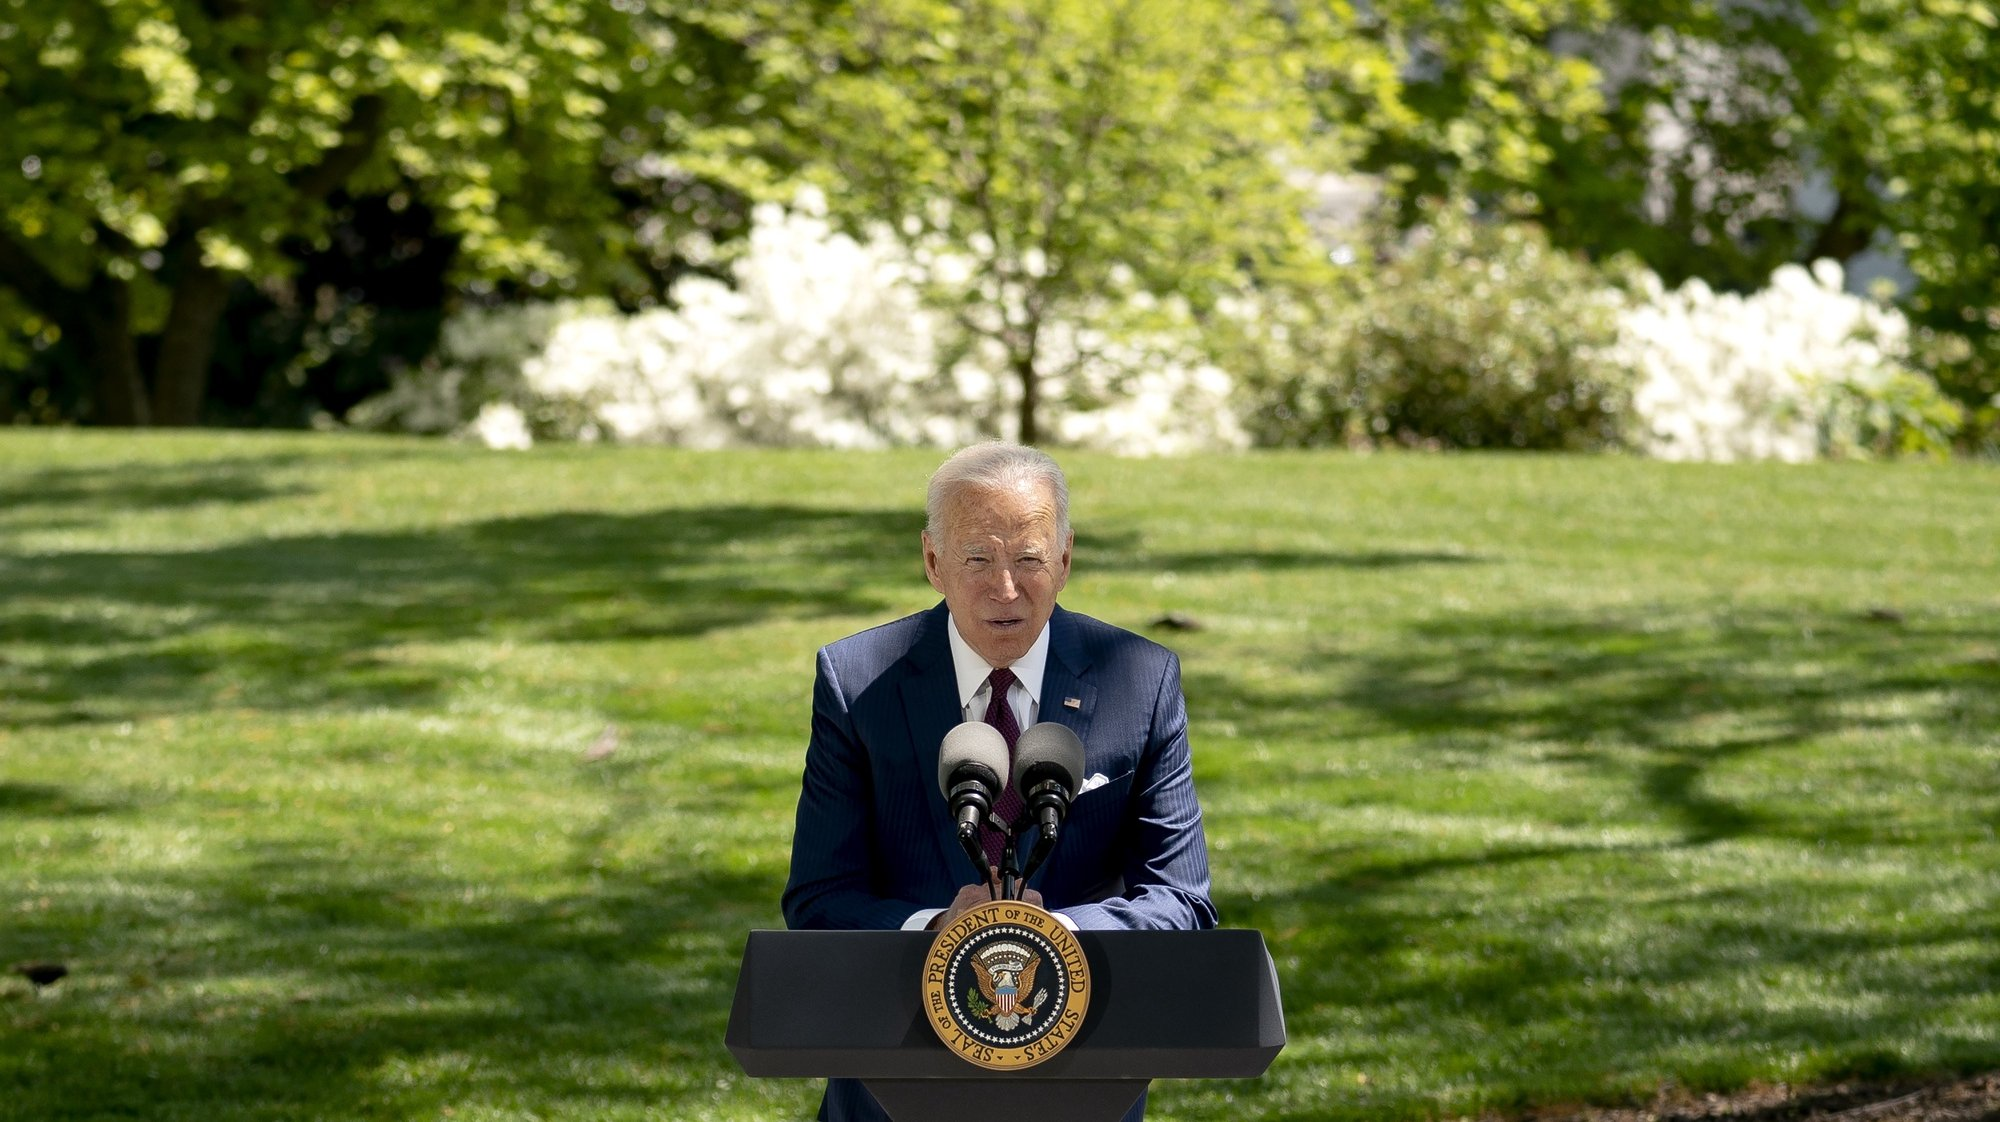 epa09164107 US President Joe Biden speaks on the North Lawn of the White House in Washington, DC, USA, on 27 April 2021. Fully-vaccinated Americans can be unmasked when exercising, dining and socializing outdoors in small groups, federal health officials said on 27 April, and can gather indoors with other fully vaccinated people and family members without masks or social distancing.  EPA/Stefani Reynolds / POOL